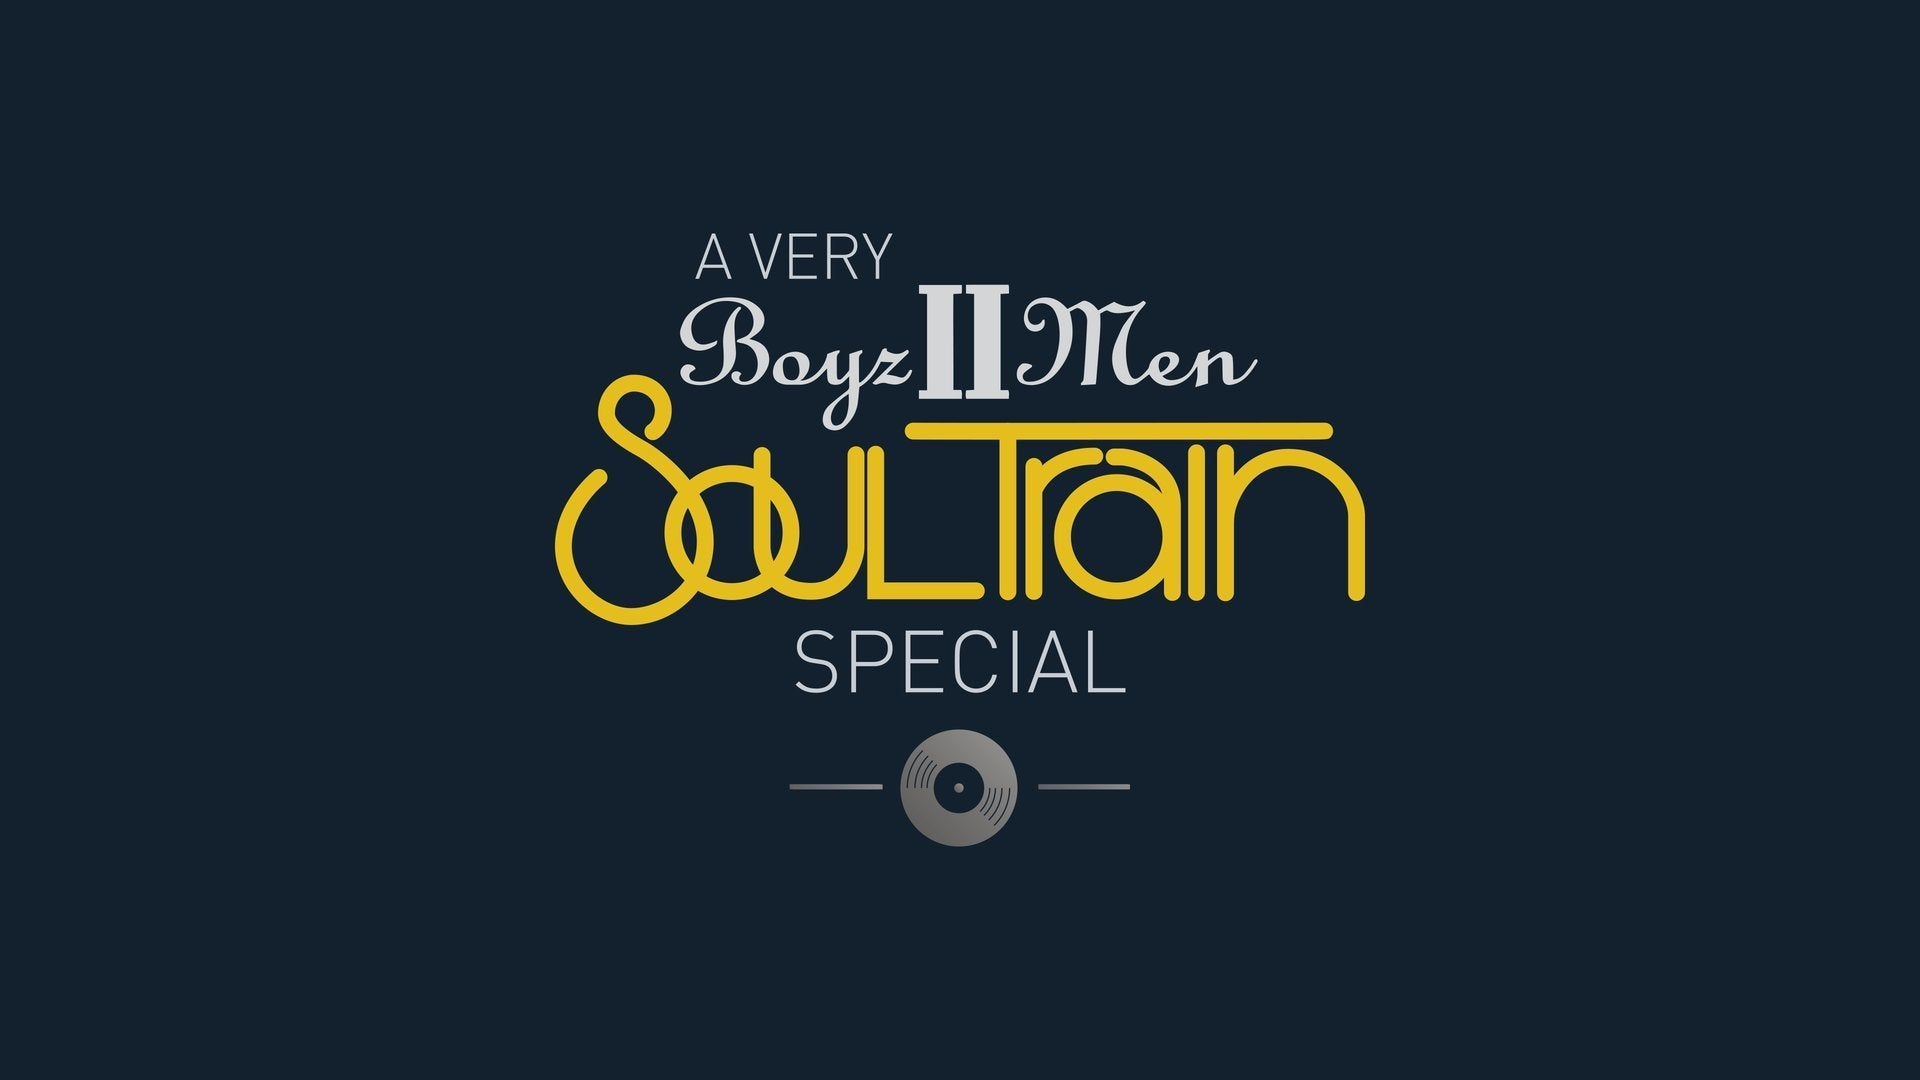 A Very Soul Train Special: Boyz II Men